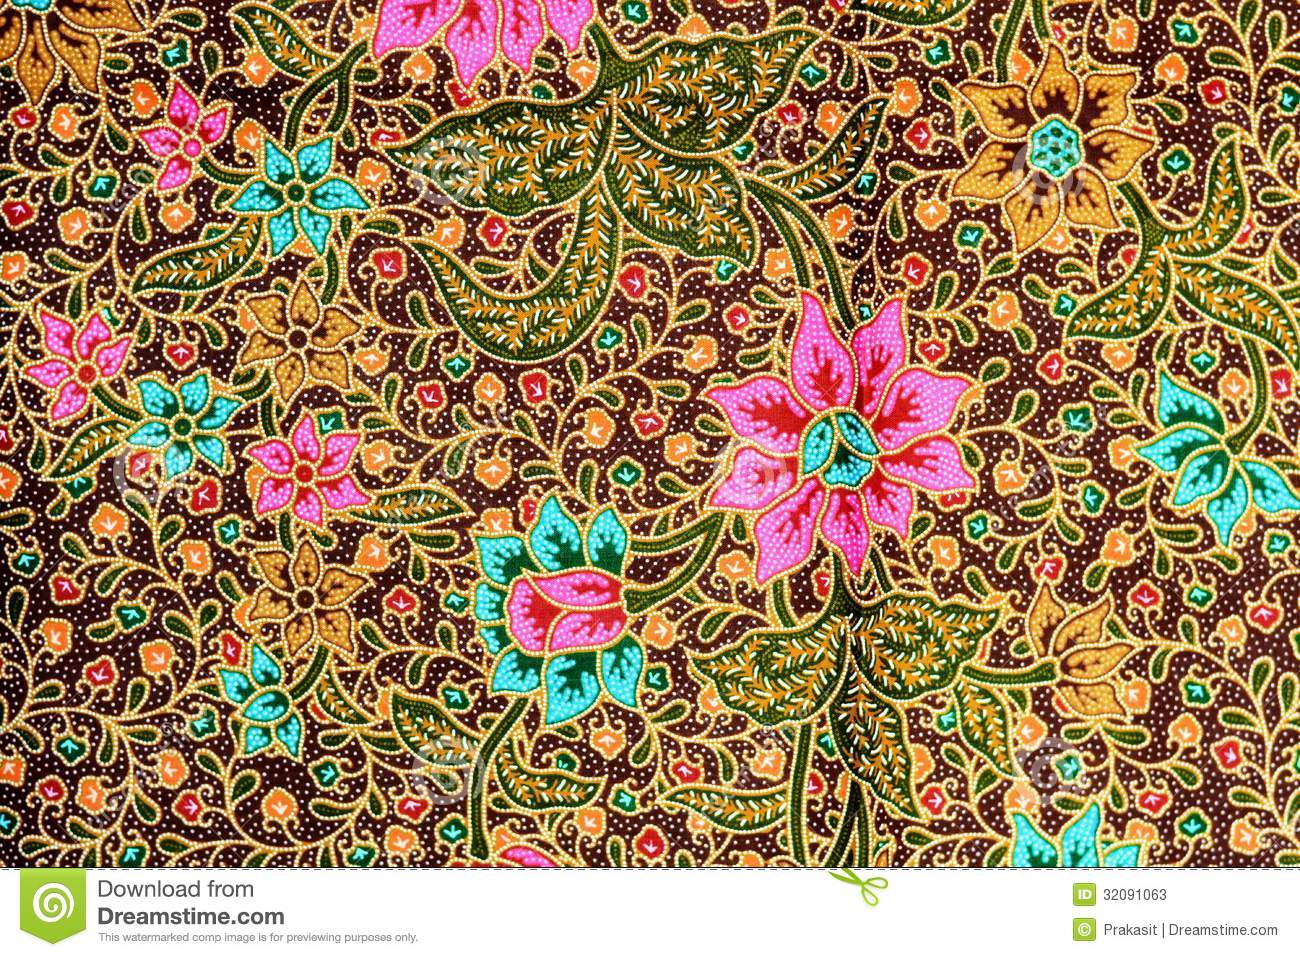 Colorful Batik Cloth Fabric Background Stock Photos - Image: 32091063